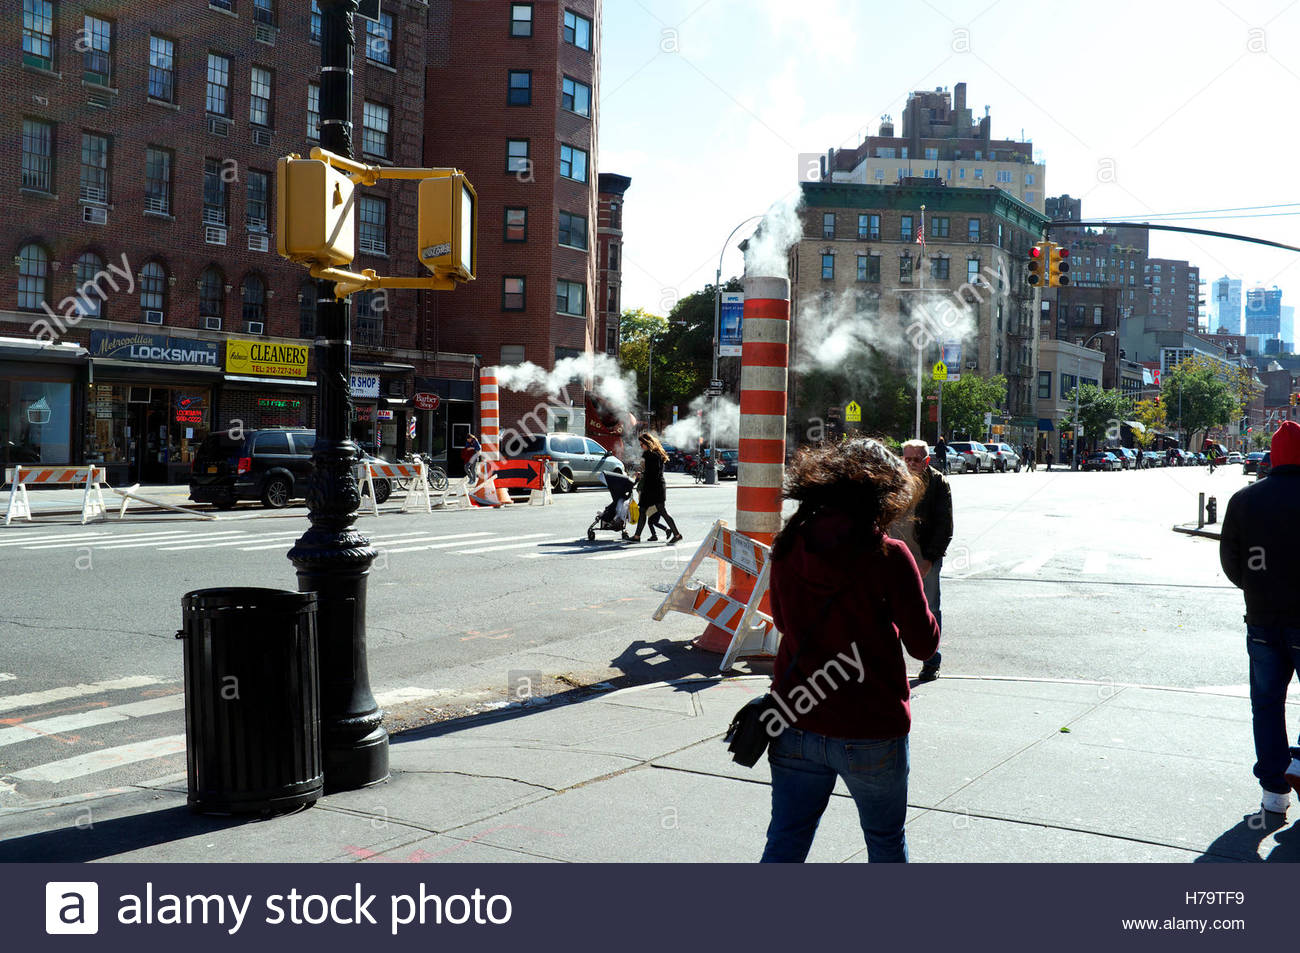 Street scene on 7th Avenue South (Greenwich Village), showing the steam funnel vents. Manhattan, New York, USA. Stock Photo